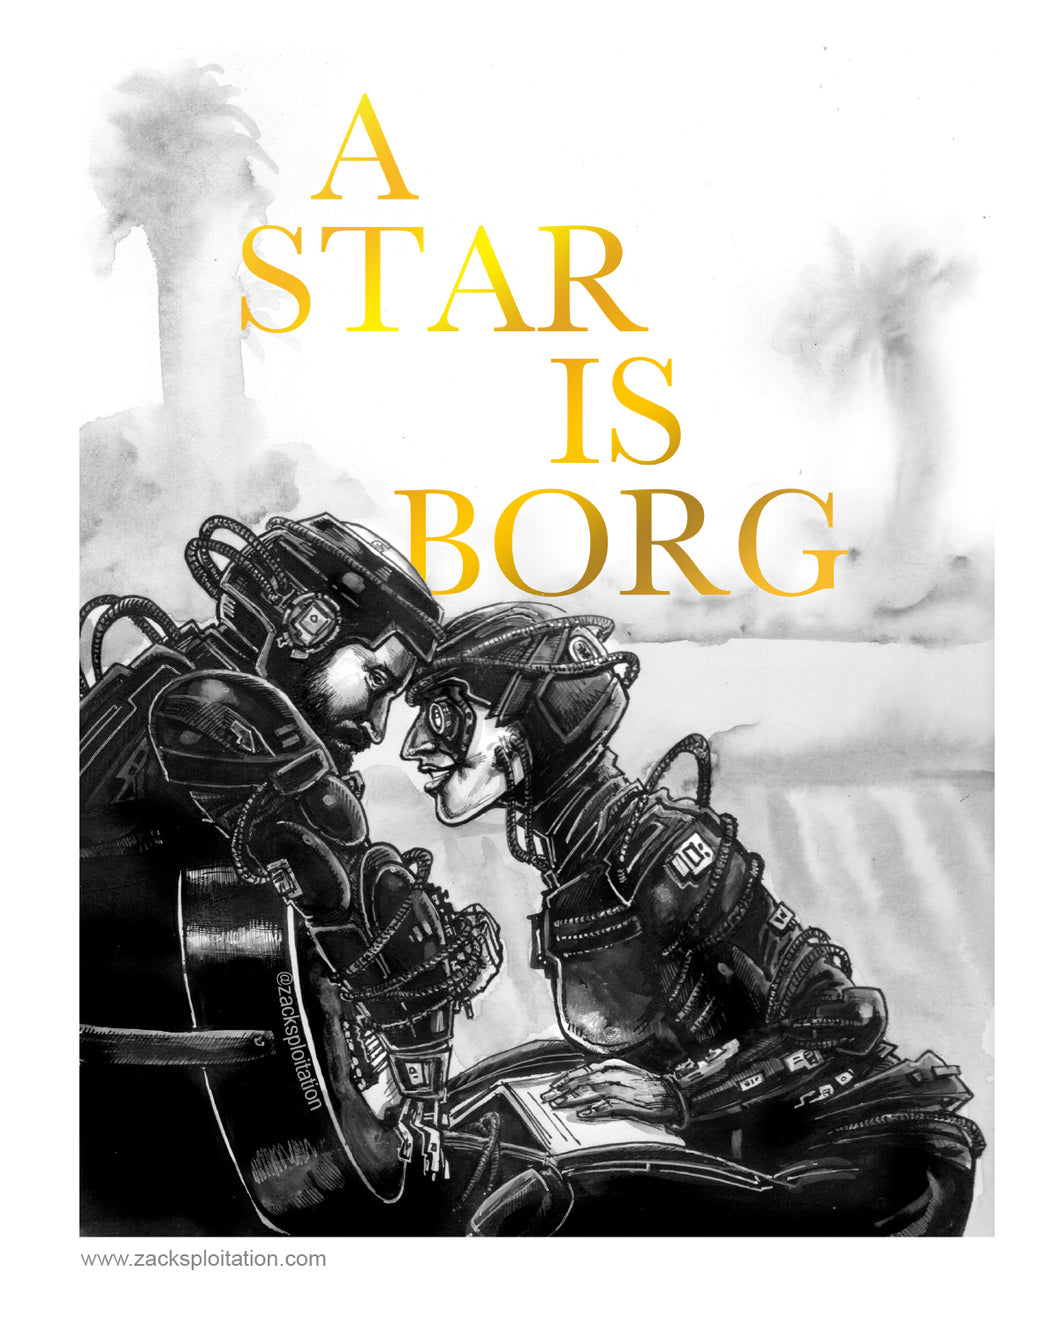 A Star Is Borg